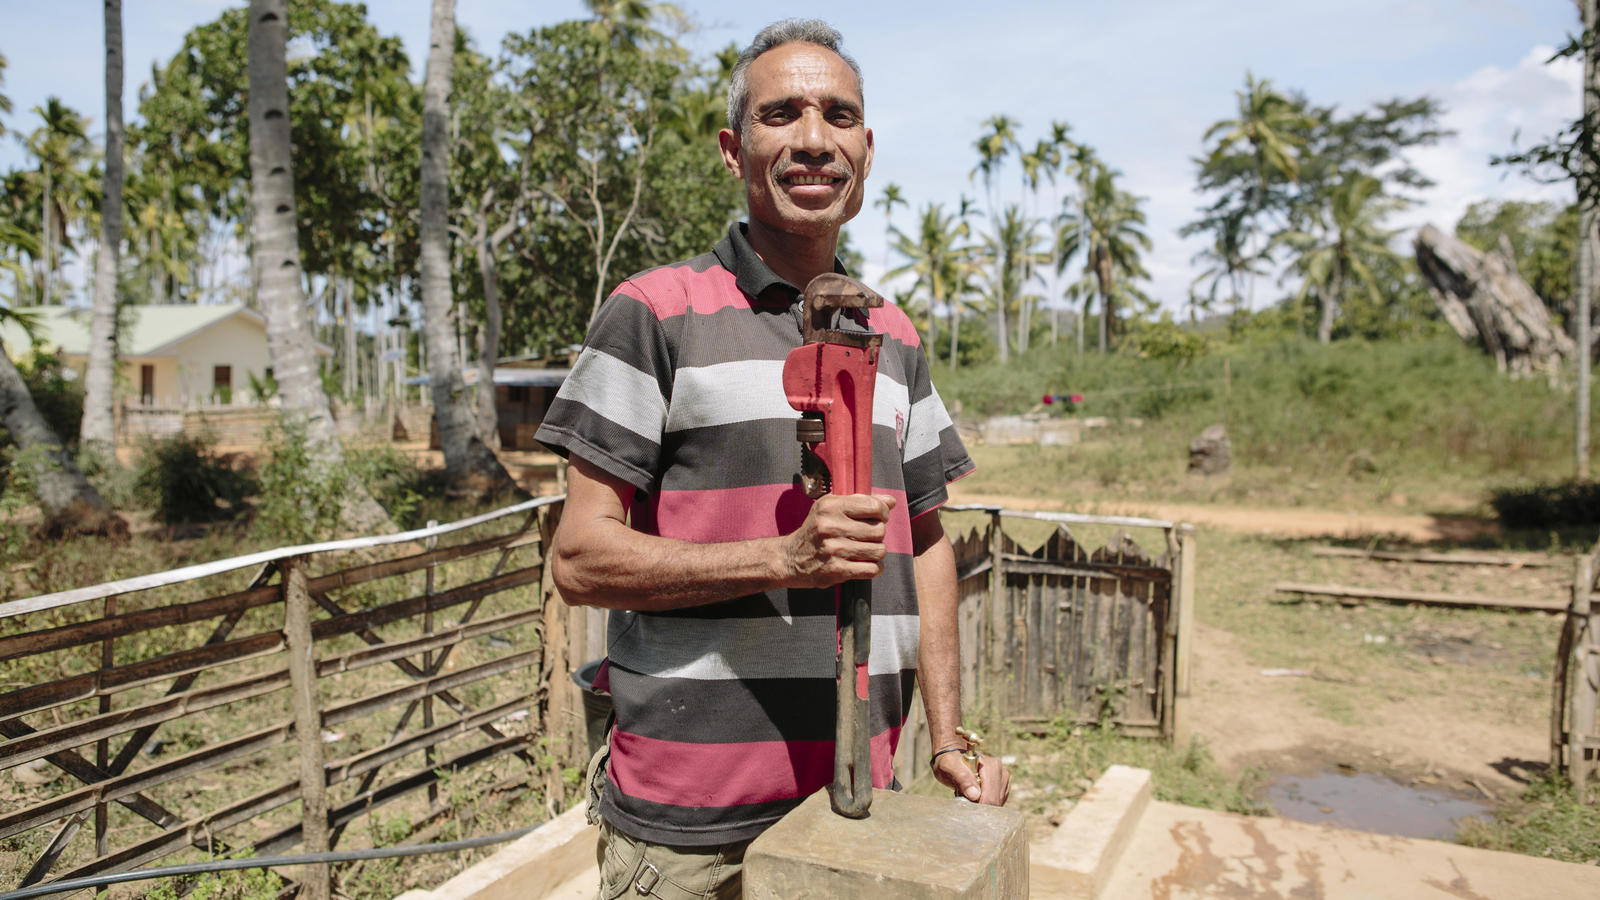 Filomeno, a member of his village's Water Committee, at one of the new tap stands in Grotu, Timor-Leste.